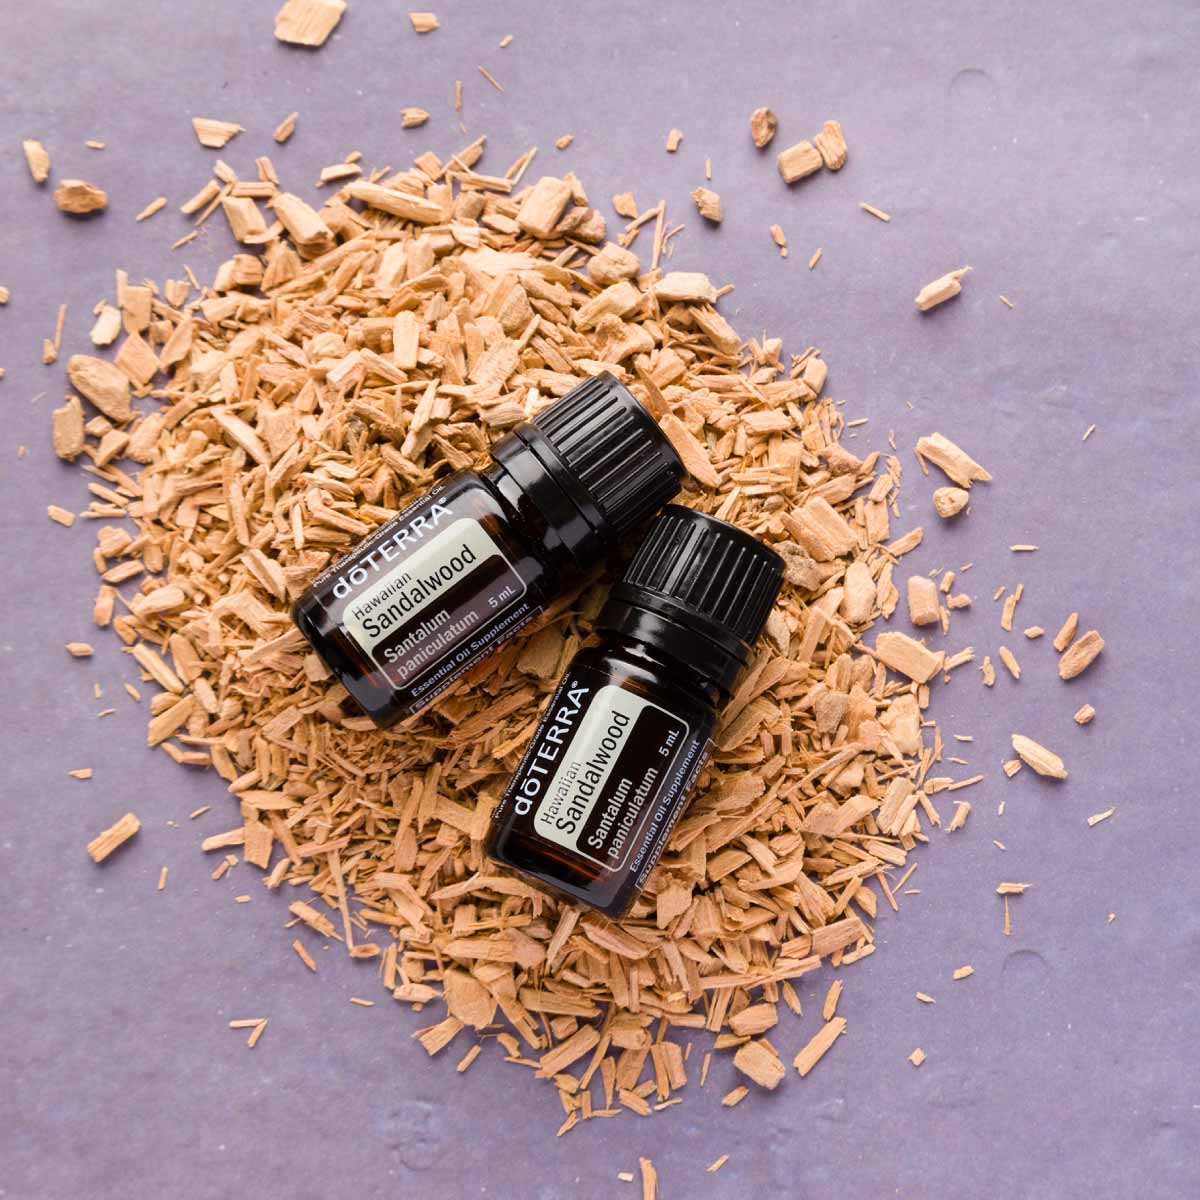 Two bottles of Hawaiian Sandalwood essential oil sitting on a pile of wood shavings. What are the benefits of Hawaiian Sandalwood oil? Hawaiian Sandalwood oil has benefits for the skin, meditation, and for promoting relaxation.